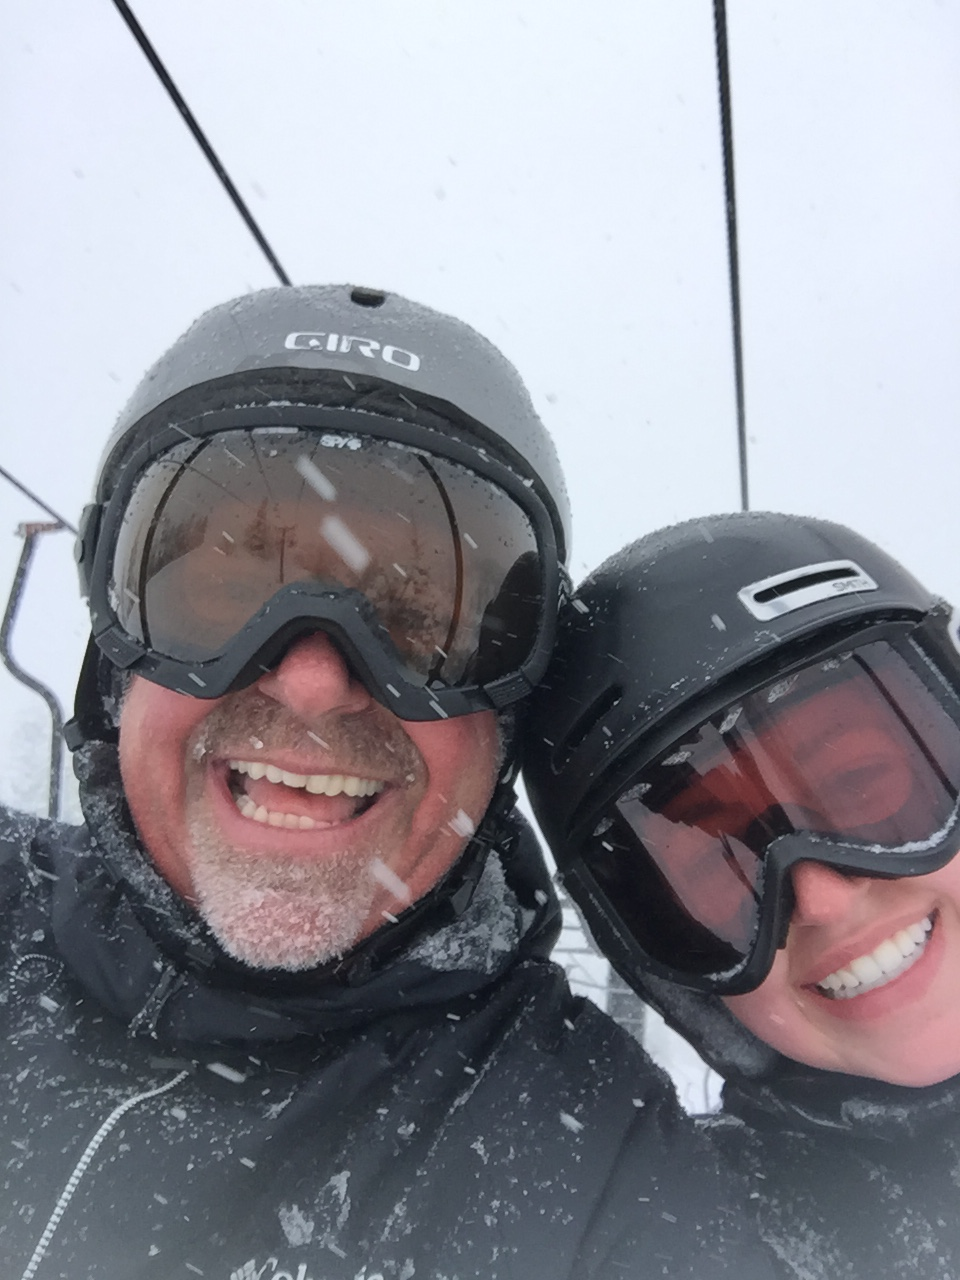 Dr. Swaim & Daughter Abbey, taking a selfie, on the Morning Star Chairlift, Bogus Basin